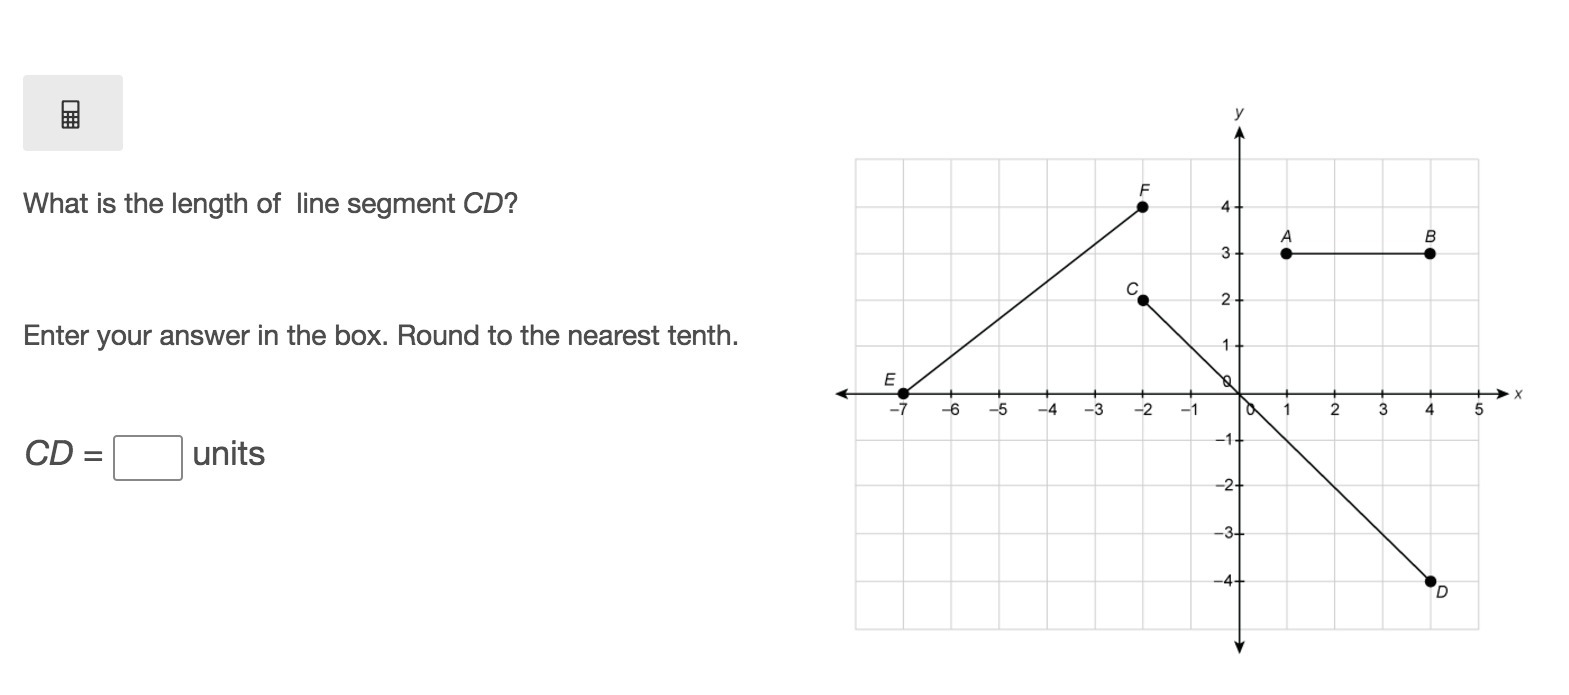 What is the length of line segment CD? Enter your answer